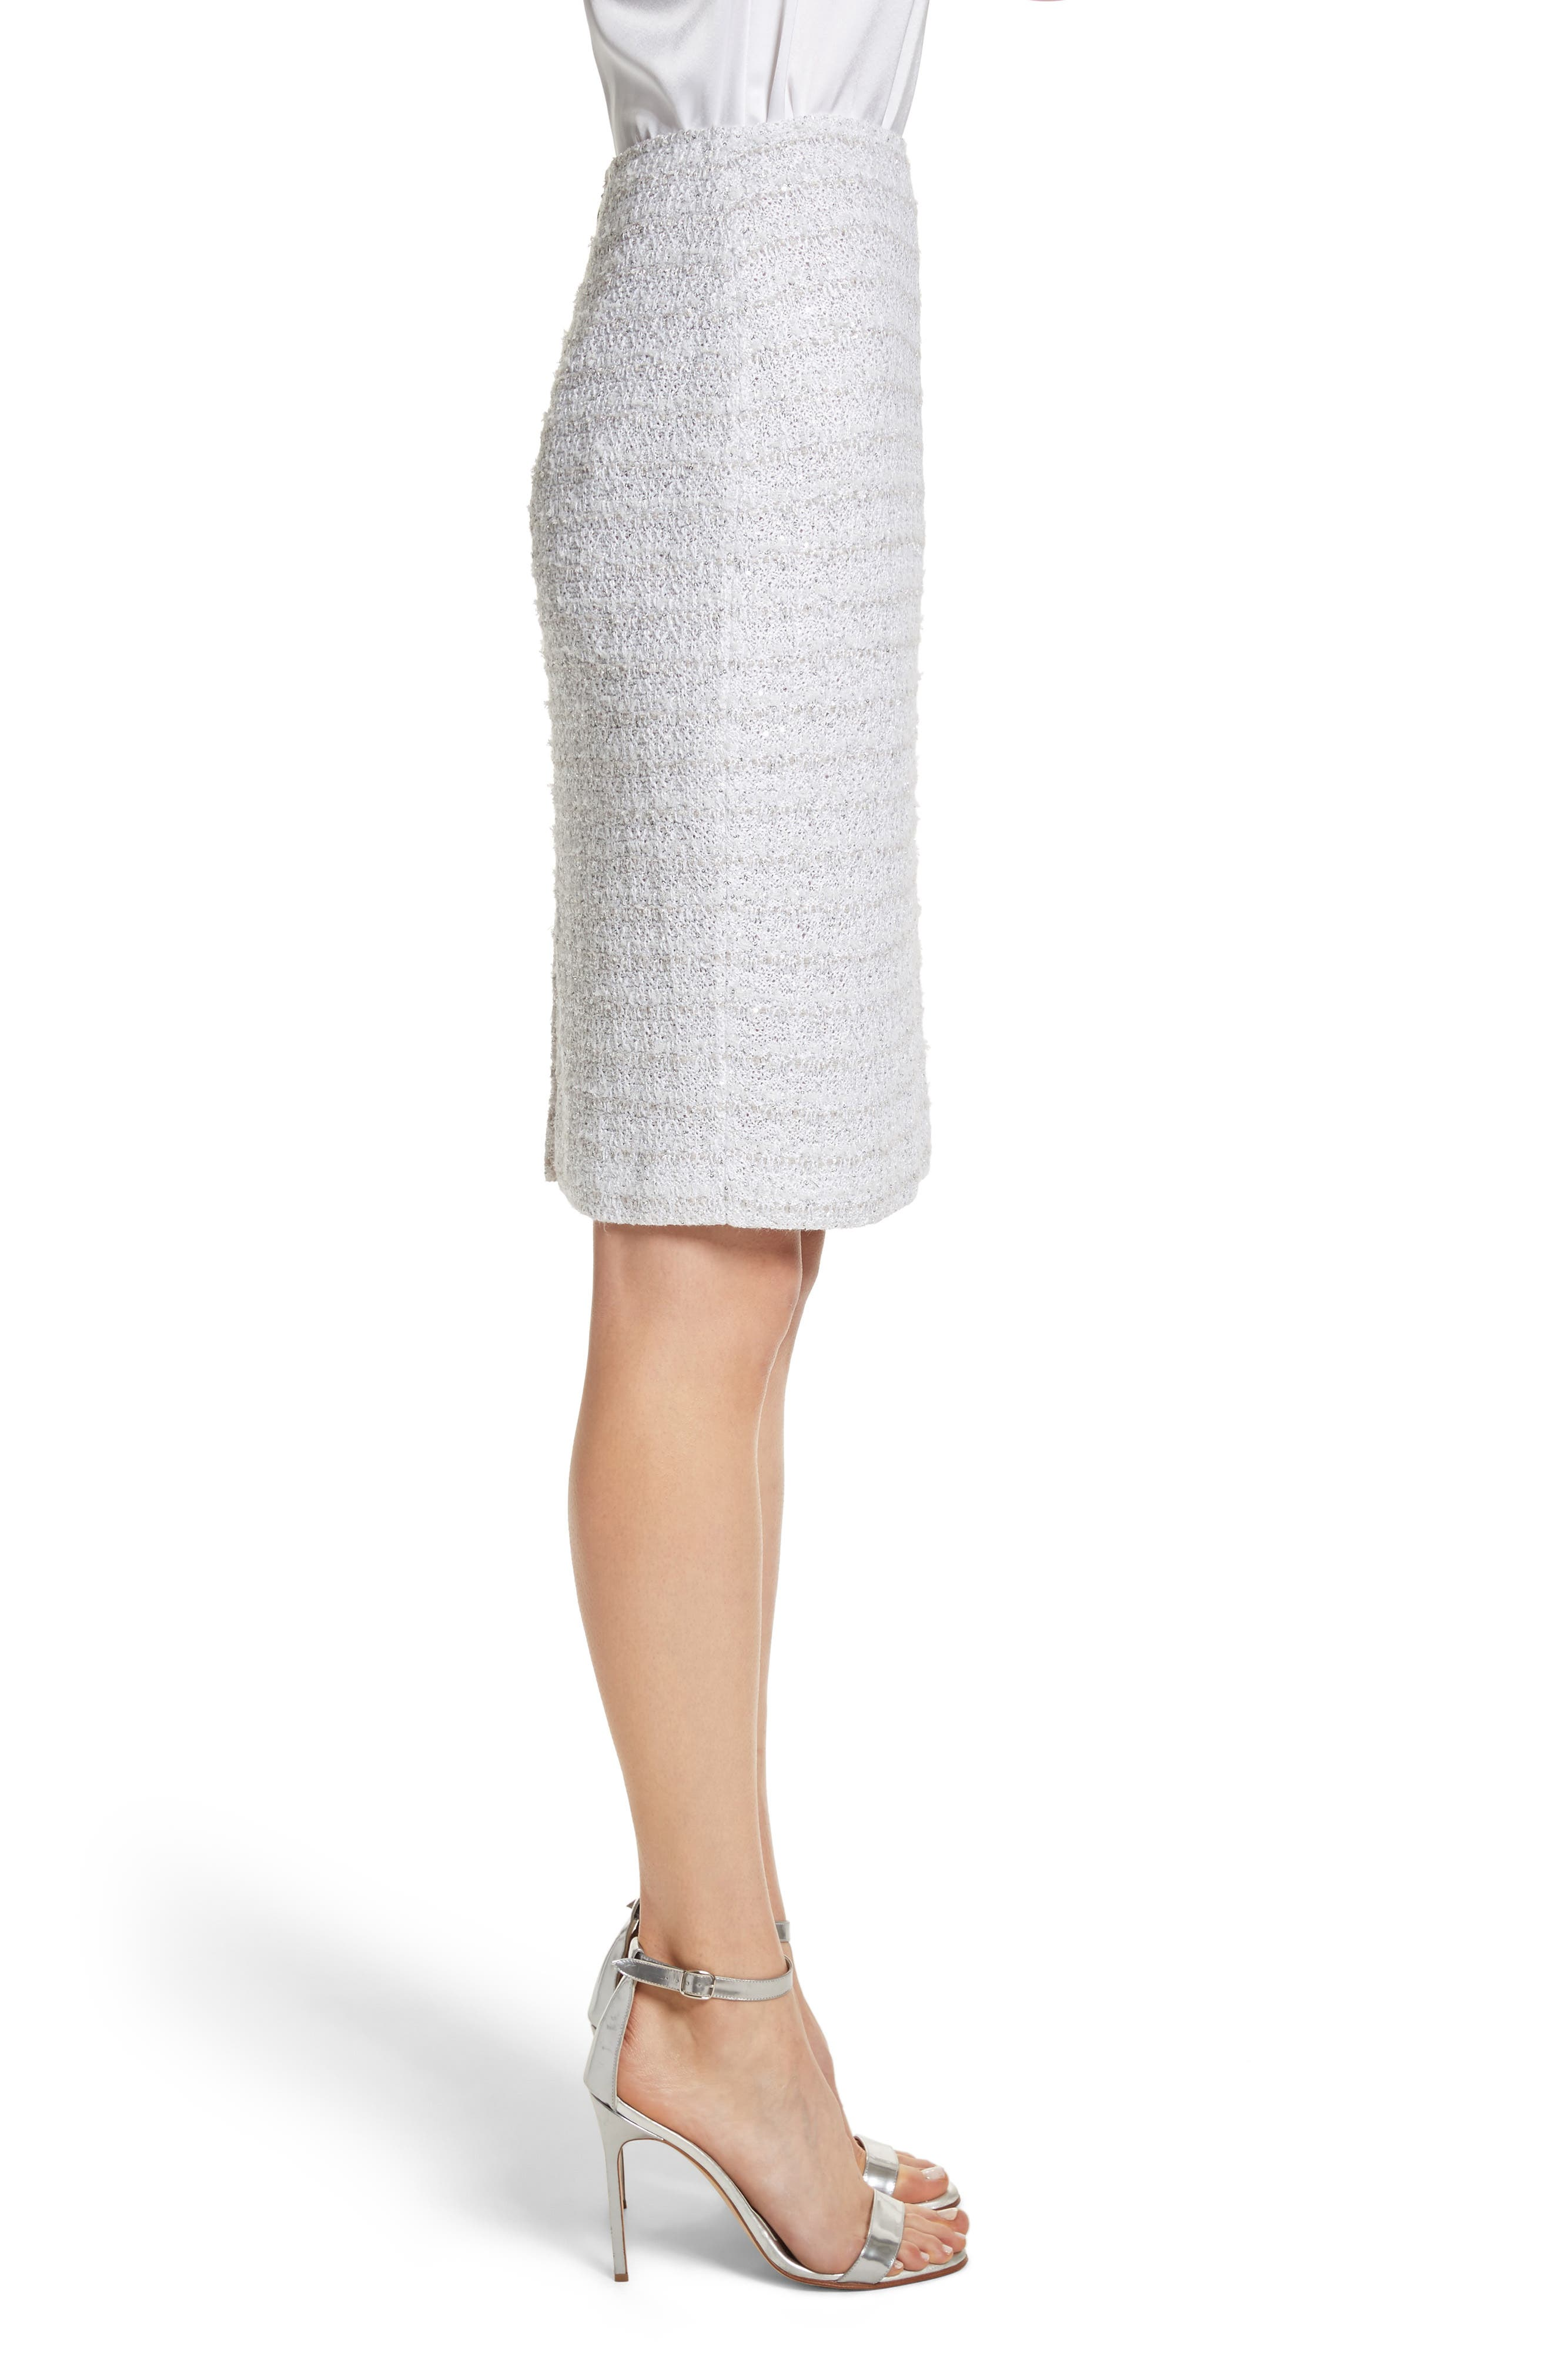 Frosted Metallic Tweed Pencil Skirt,                             Alternate thumbnail 3, color,                             100